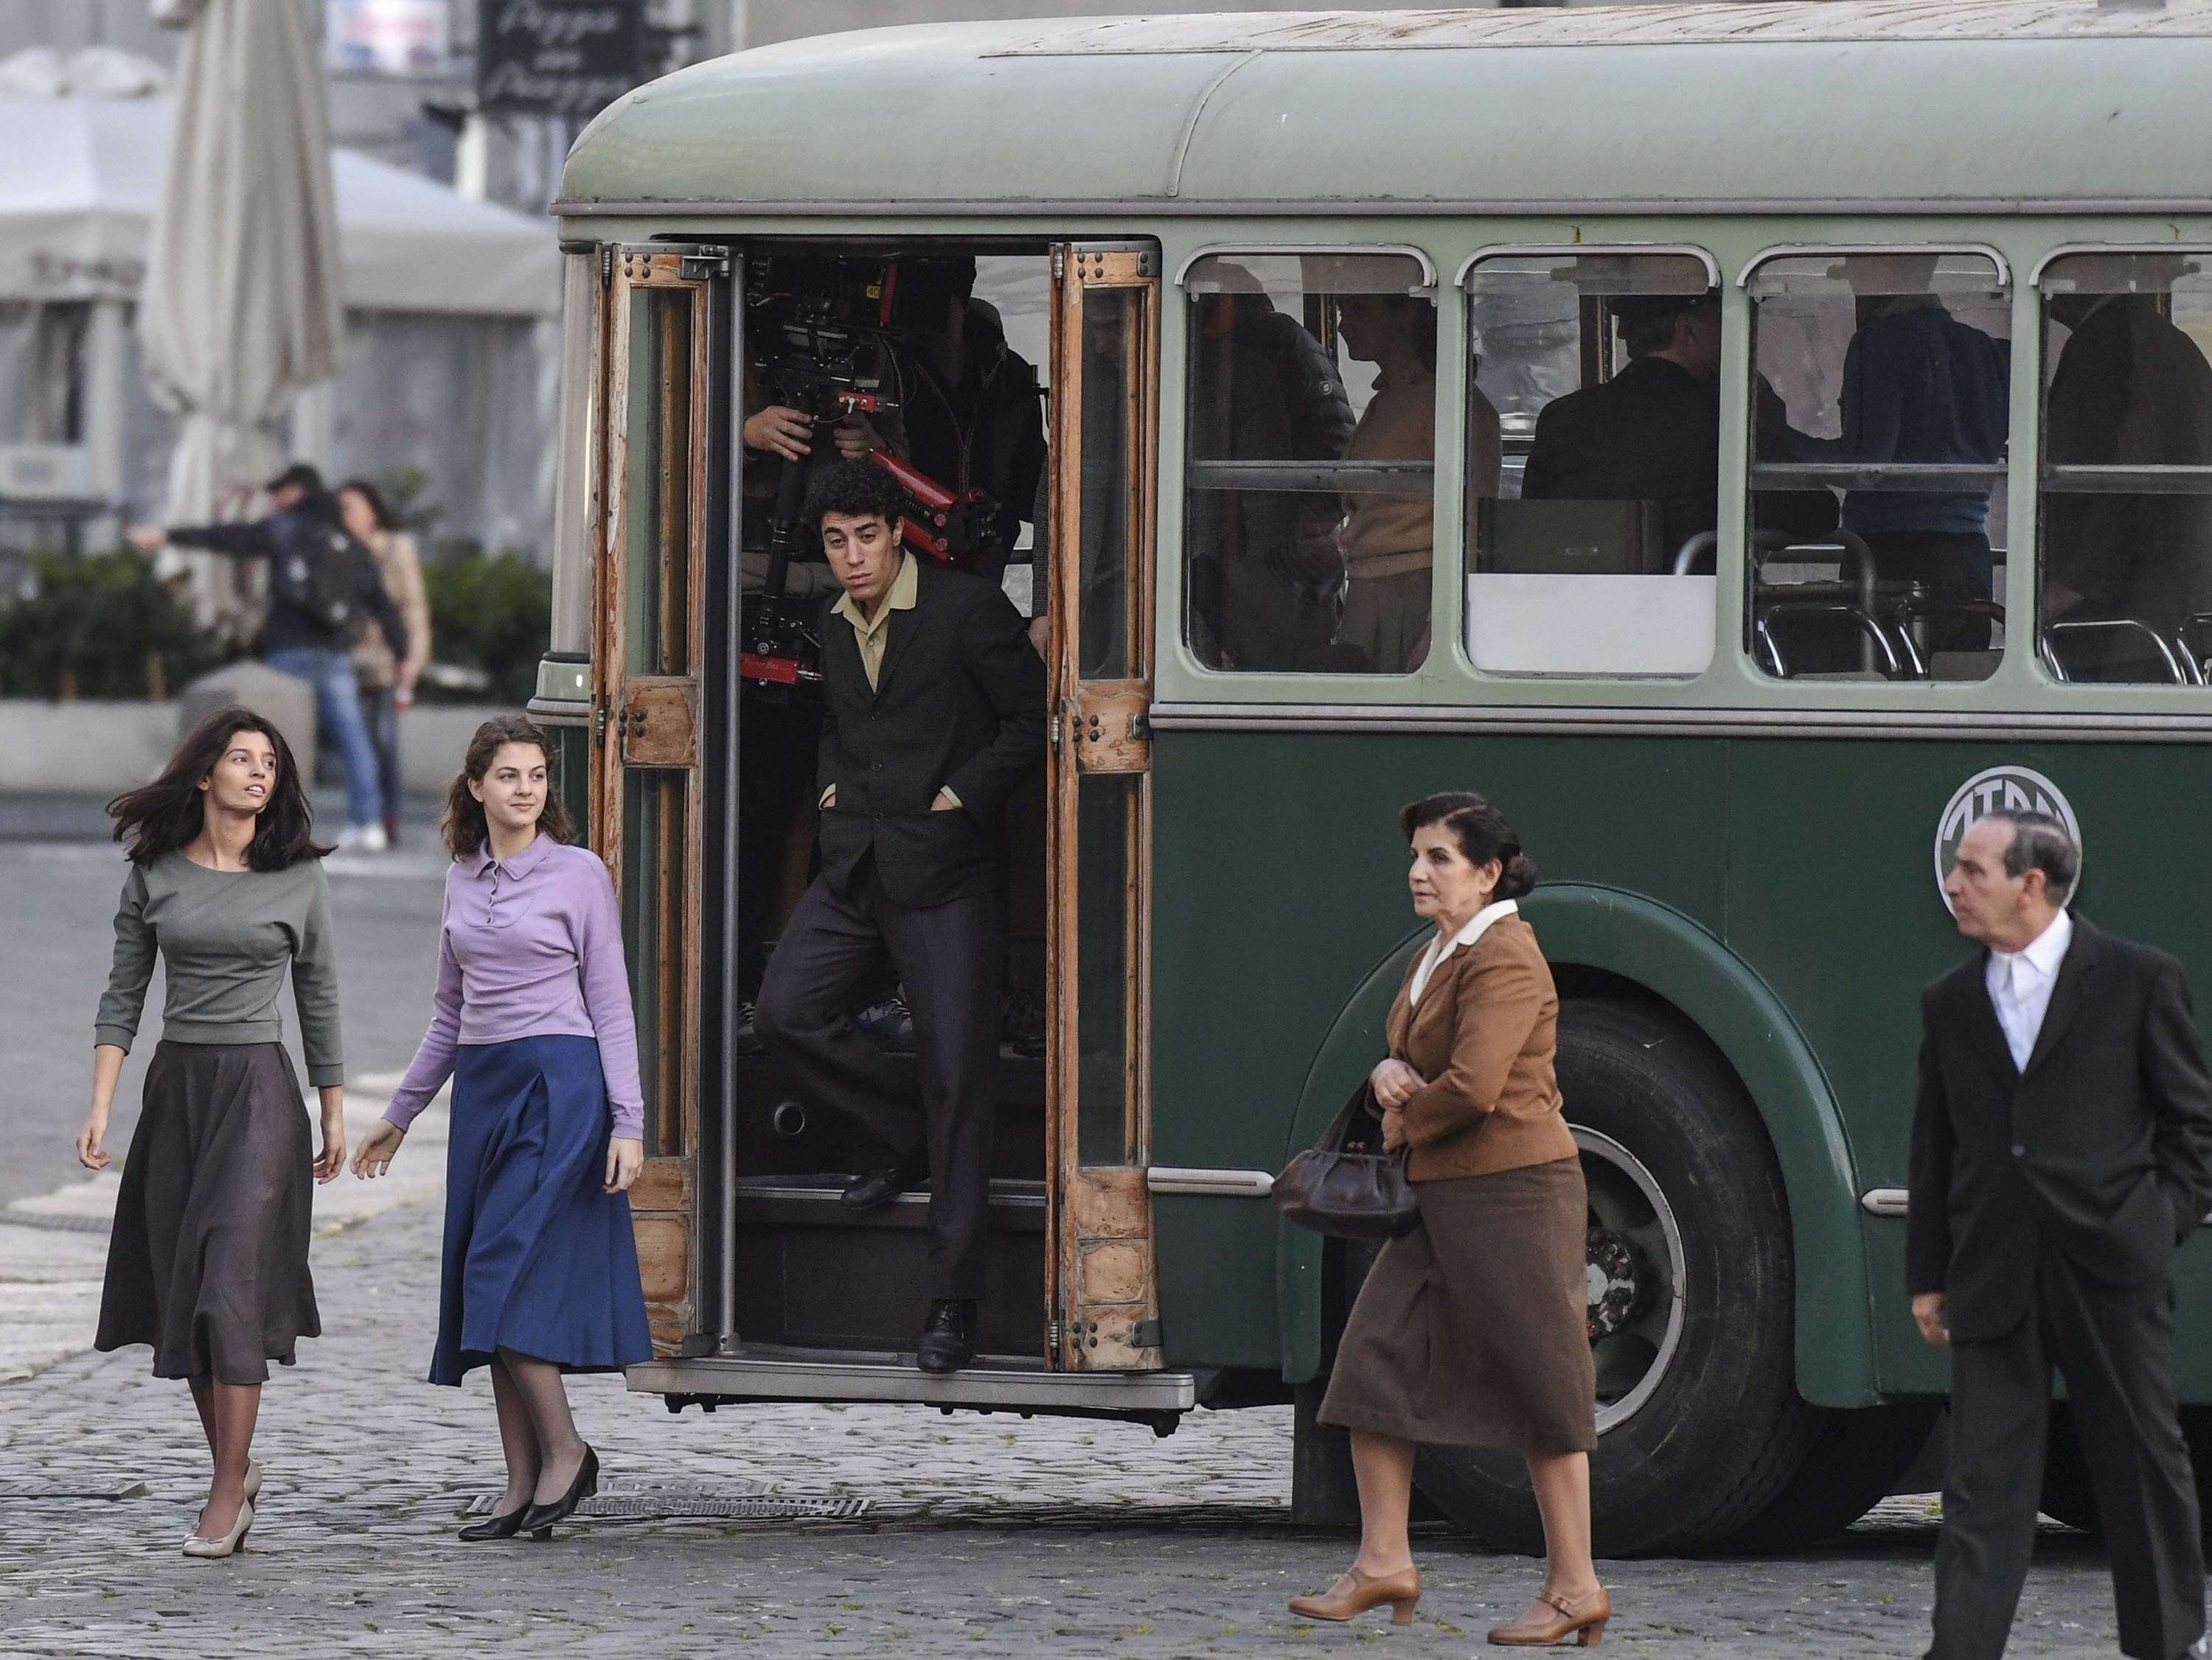 Gaia Girace (L) andMargherita Mazzucco (C-L) get off the buson the set of the TV series 'My Brilliant Friend' ('L'amica geniale') based on the novels of Elena Ferrante, in Naples, Italy, Jan. 13, 2021. (Getty Images)